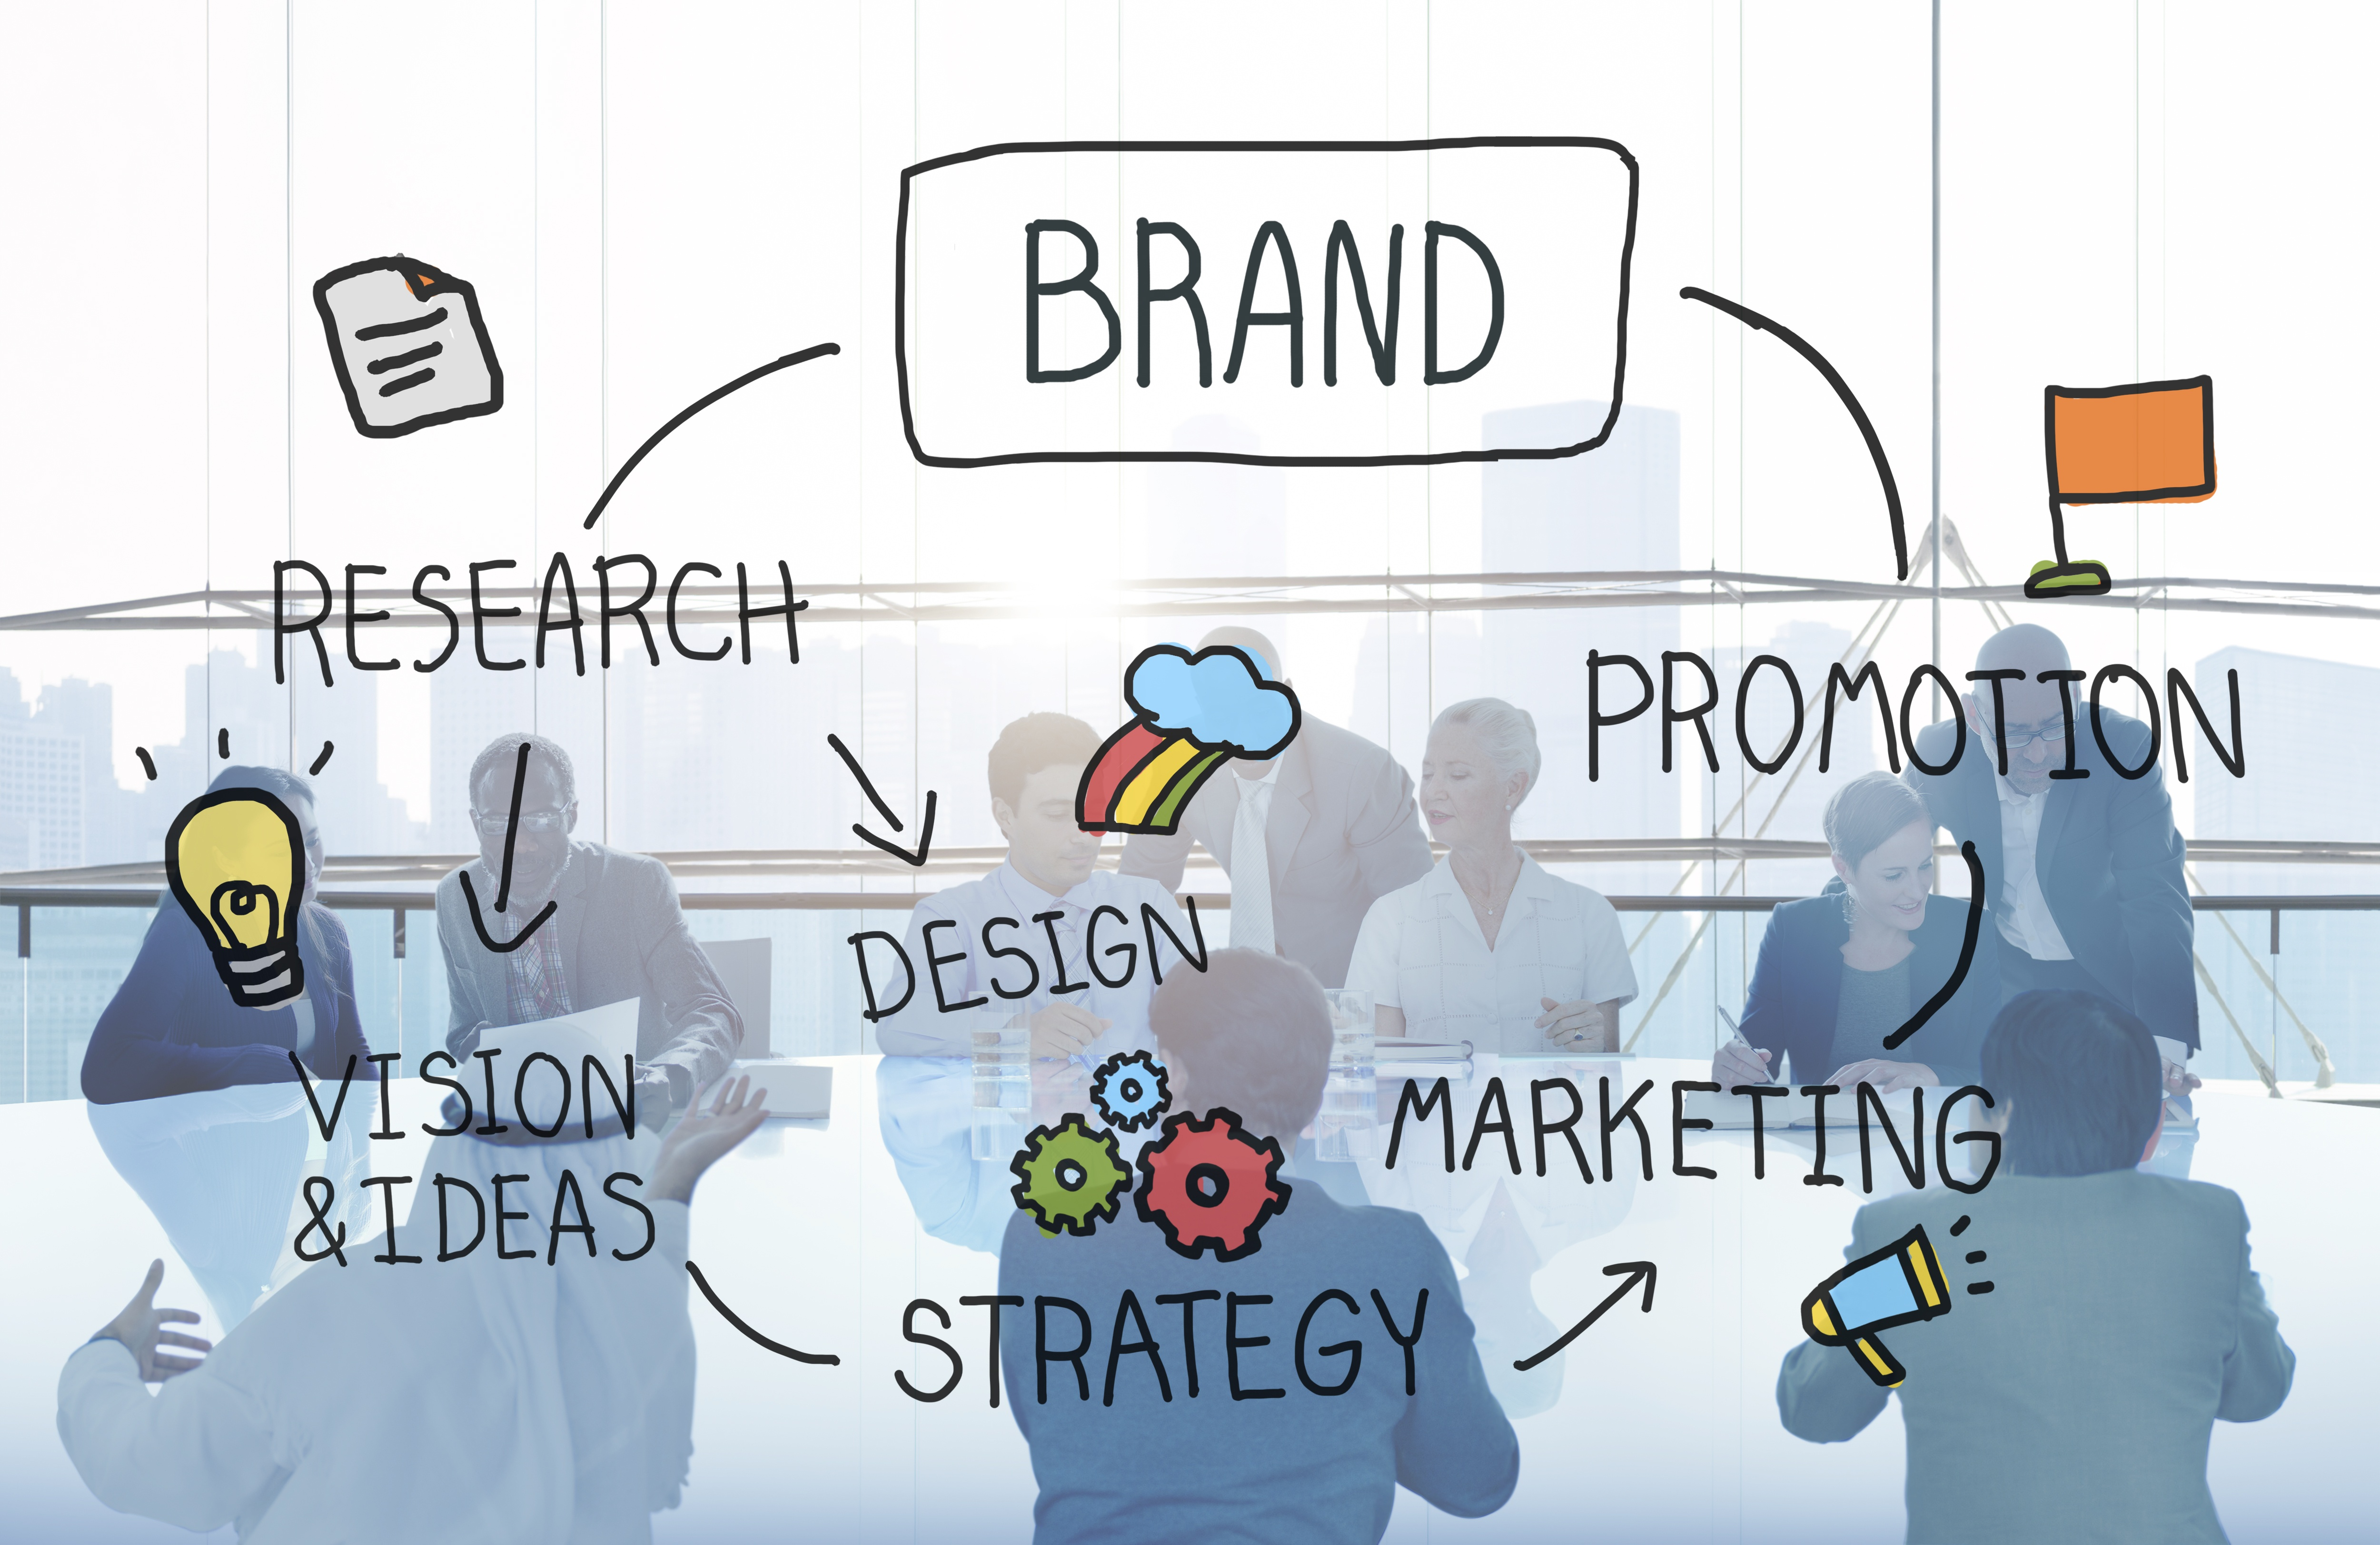 How-to Brand Your Business on a Budget